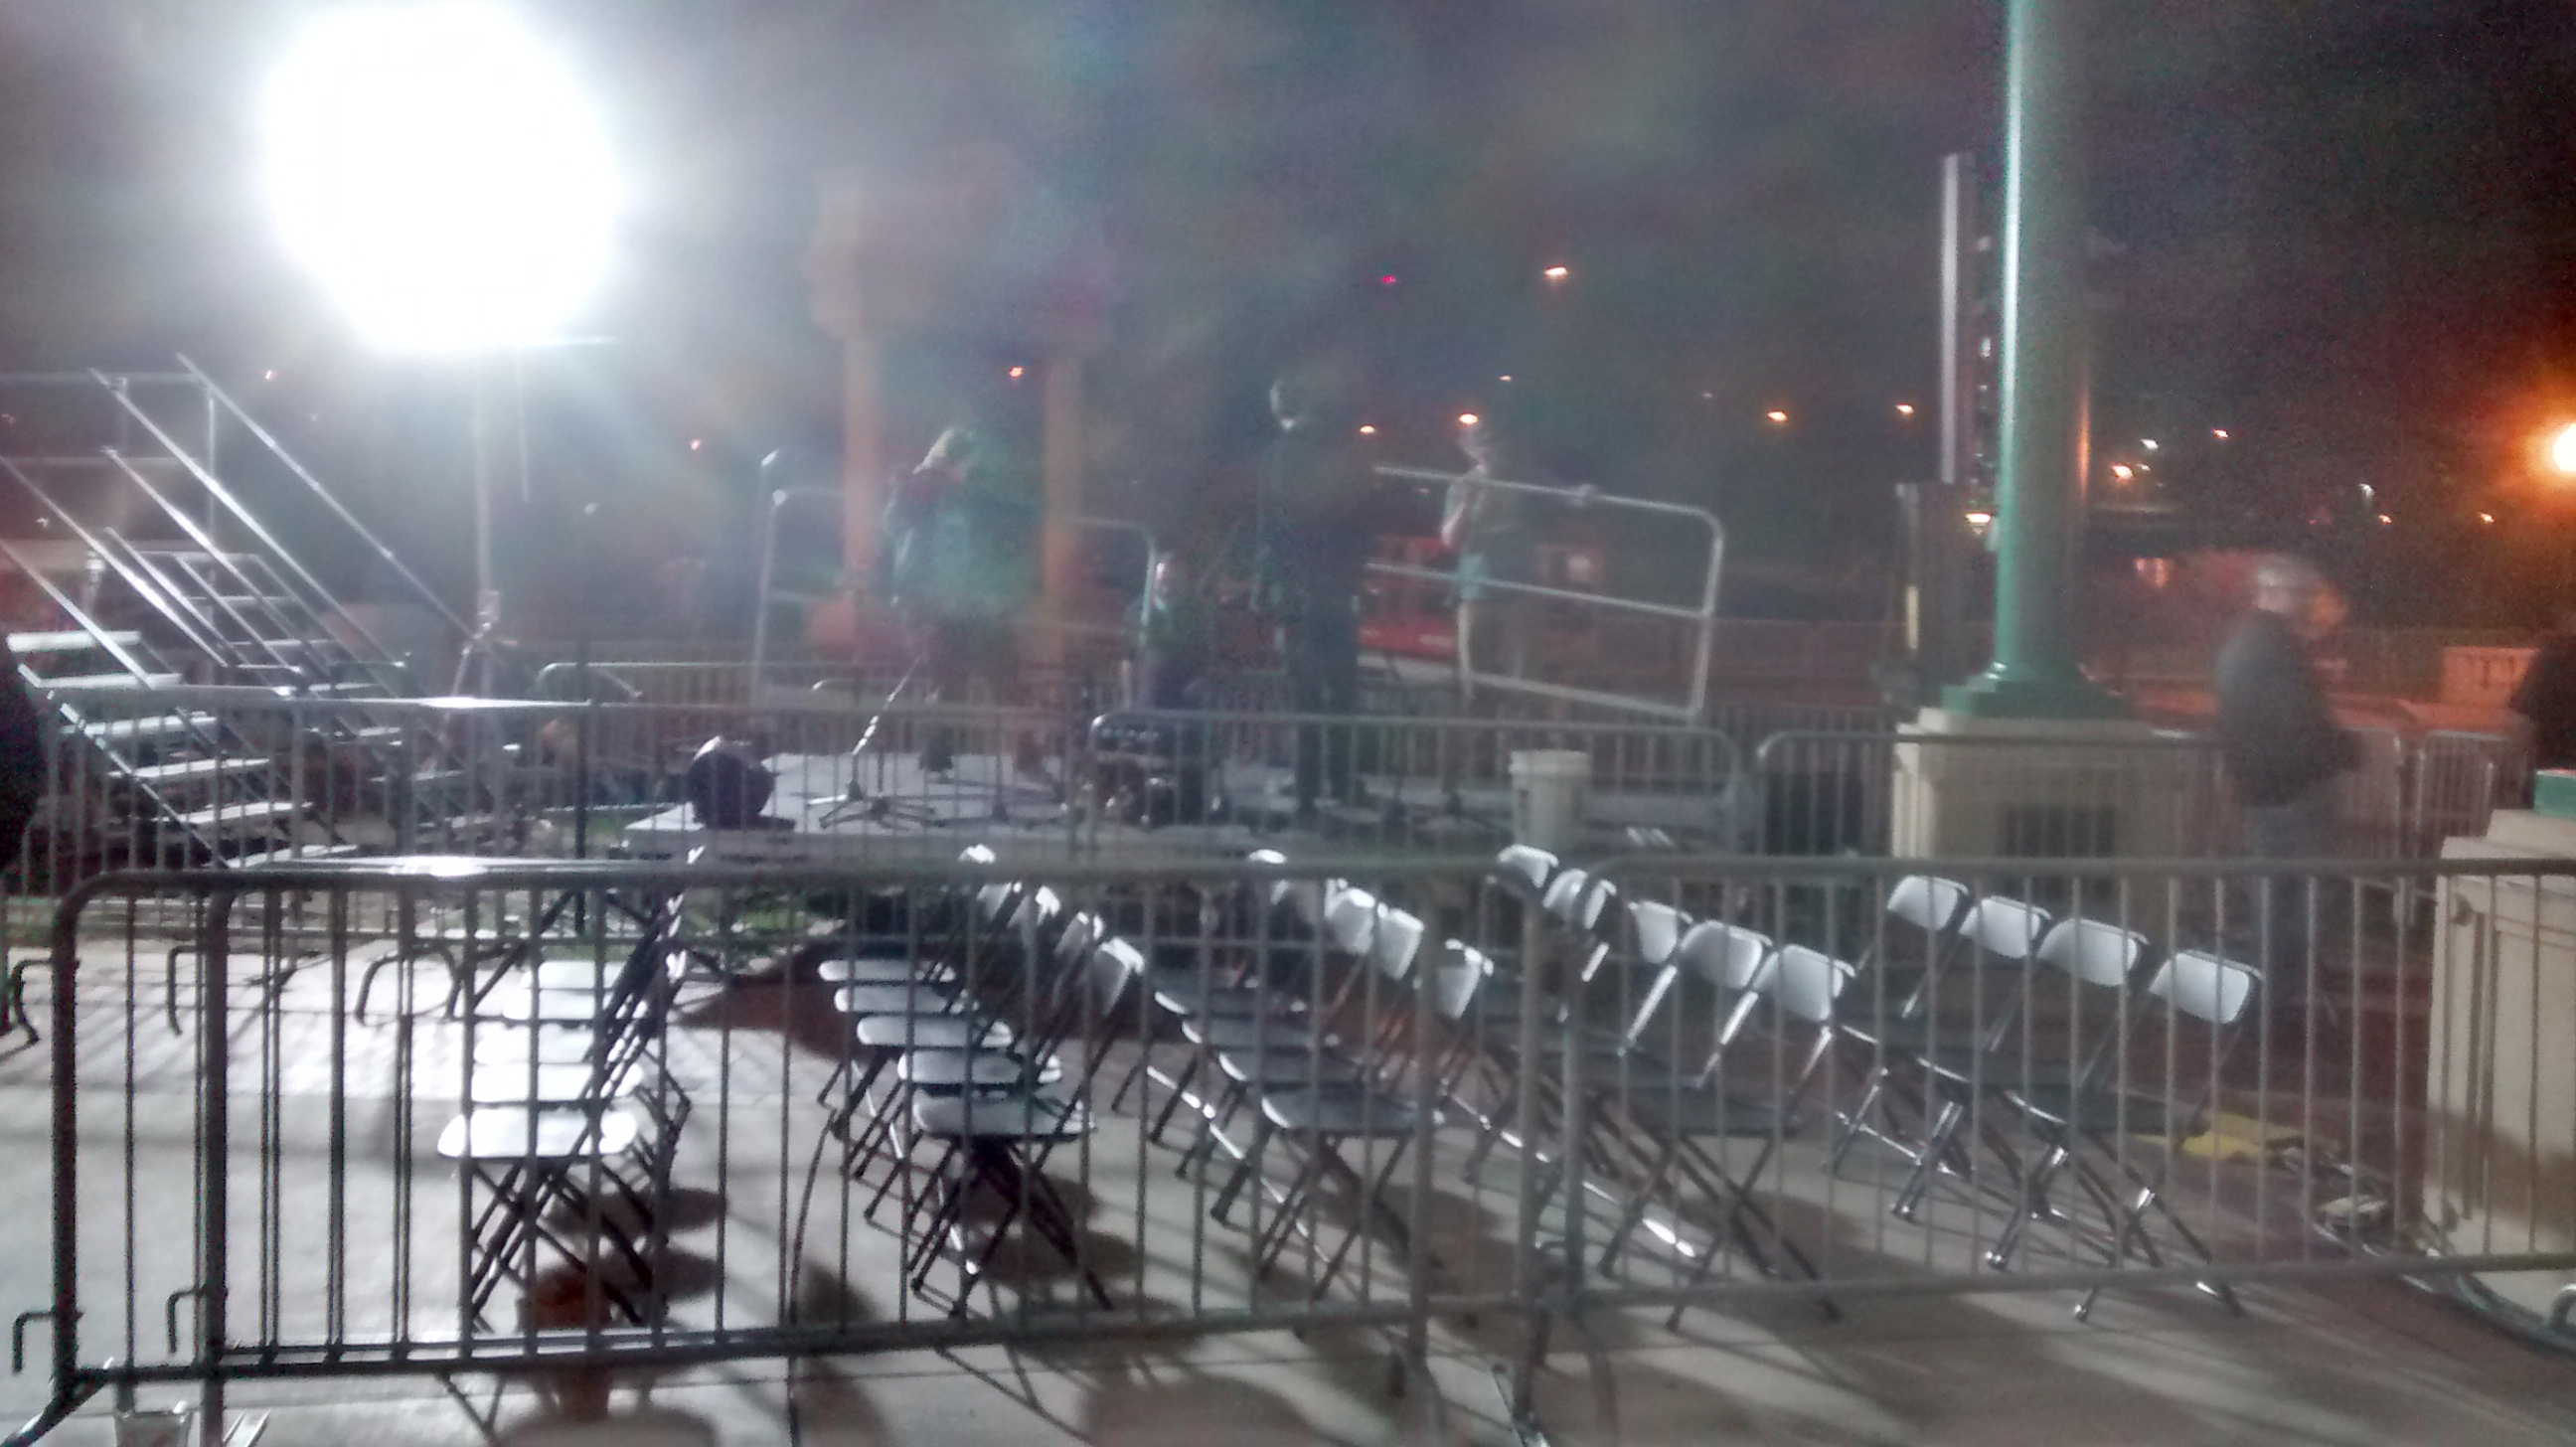 Barricade and seating area with band stage in the background setup for political event at Larsen Park Road, Sioux City, Iowa